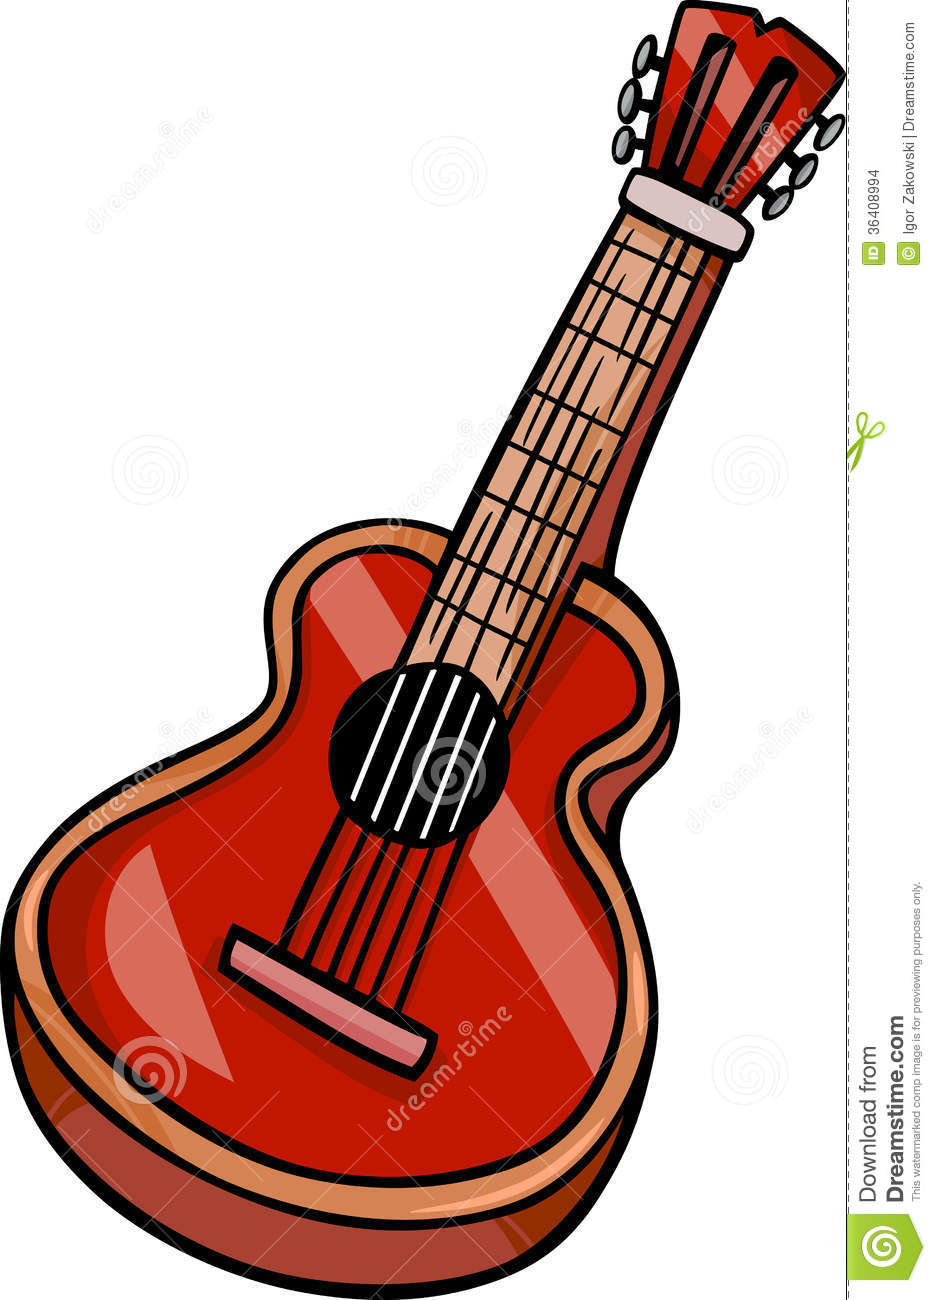 acoustic guitar cartoon clip art stock vector illustration of rh dreamstime com instrument clipart musical instrument clipart